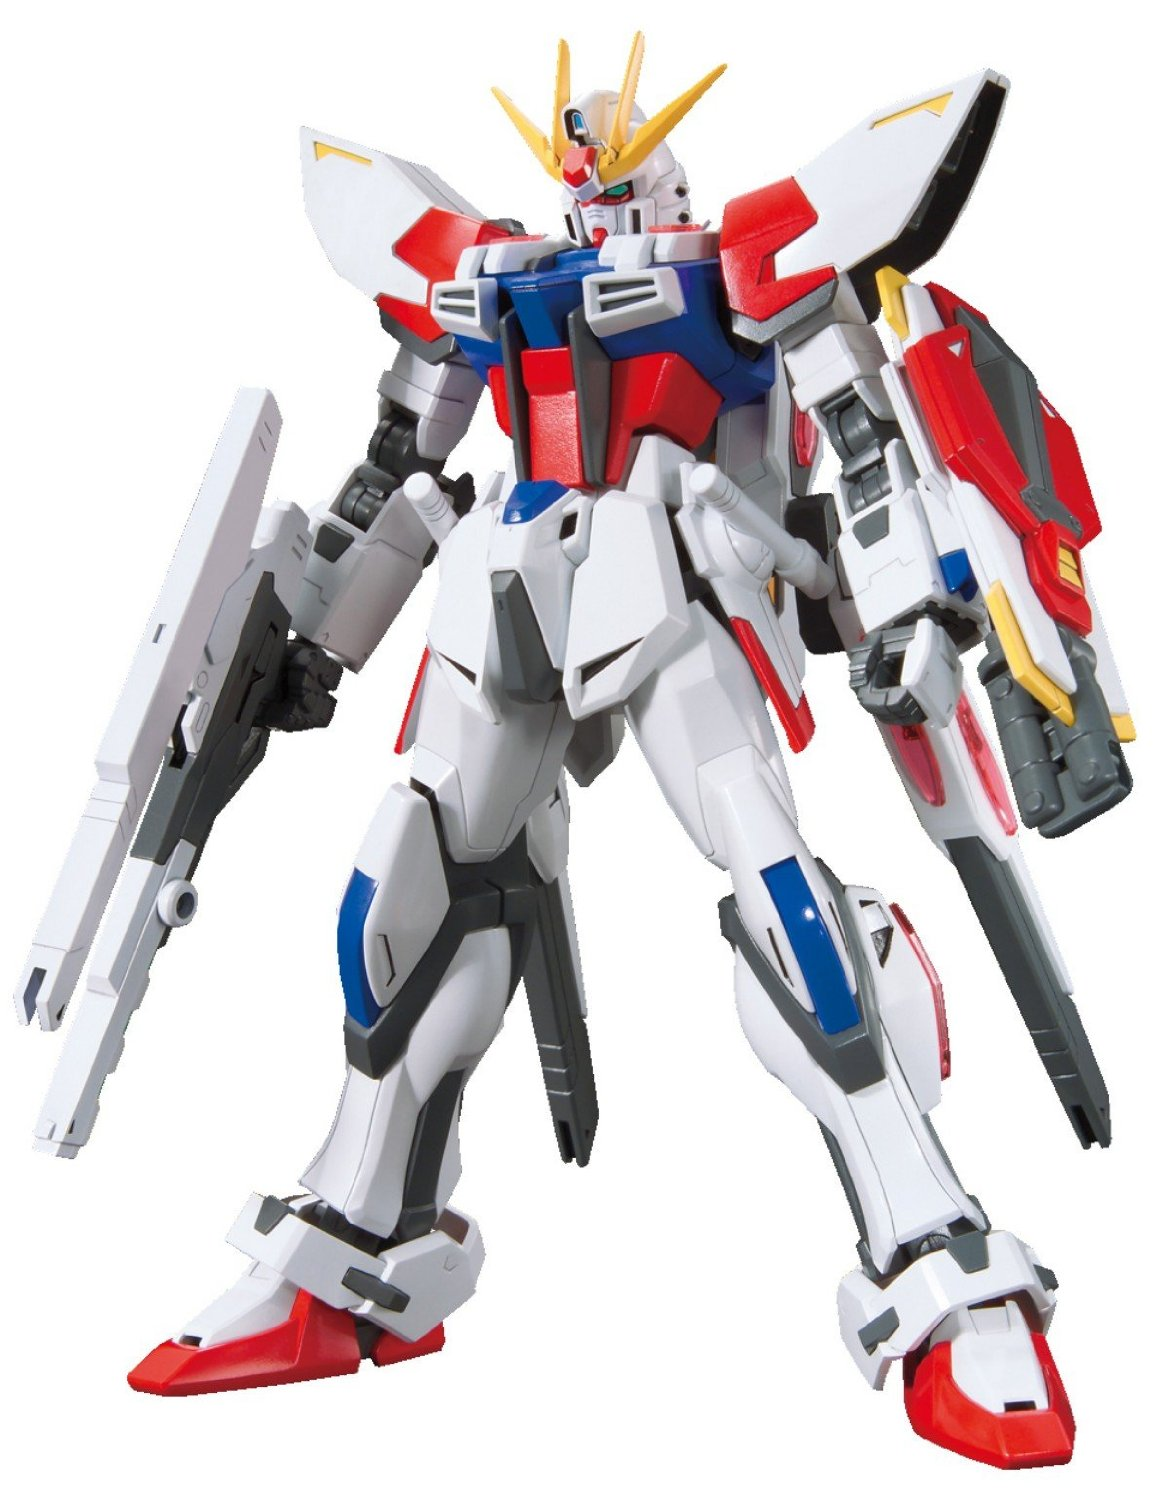 Gundam HGBF Star Build Strike Plavsky Wing Model Kit 1/144